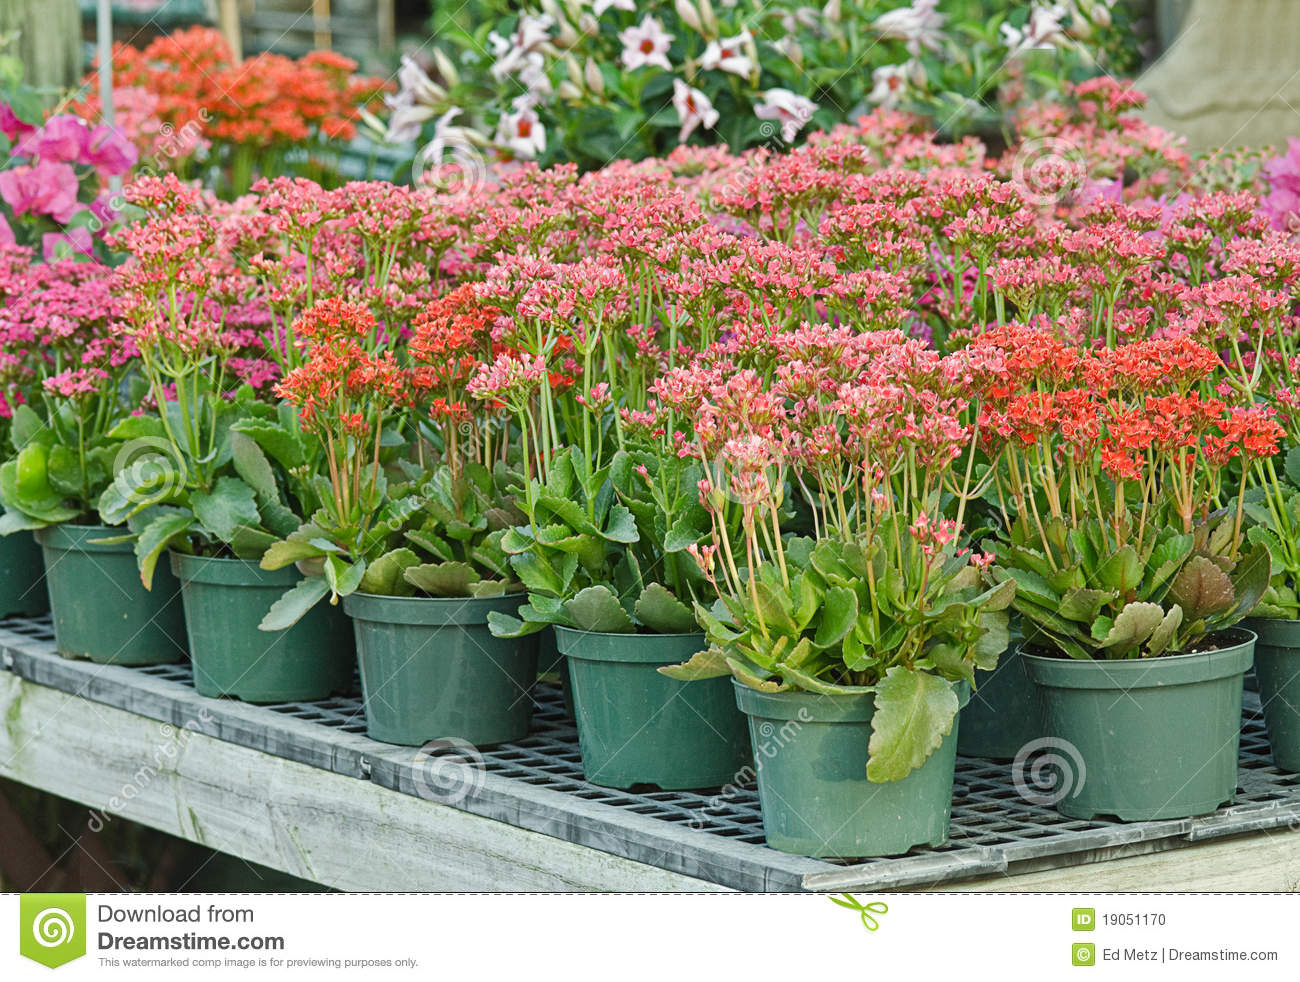 Potted plants in nursery stock photo image of bedding 19051170 potted plants in nursery mightylinksfo